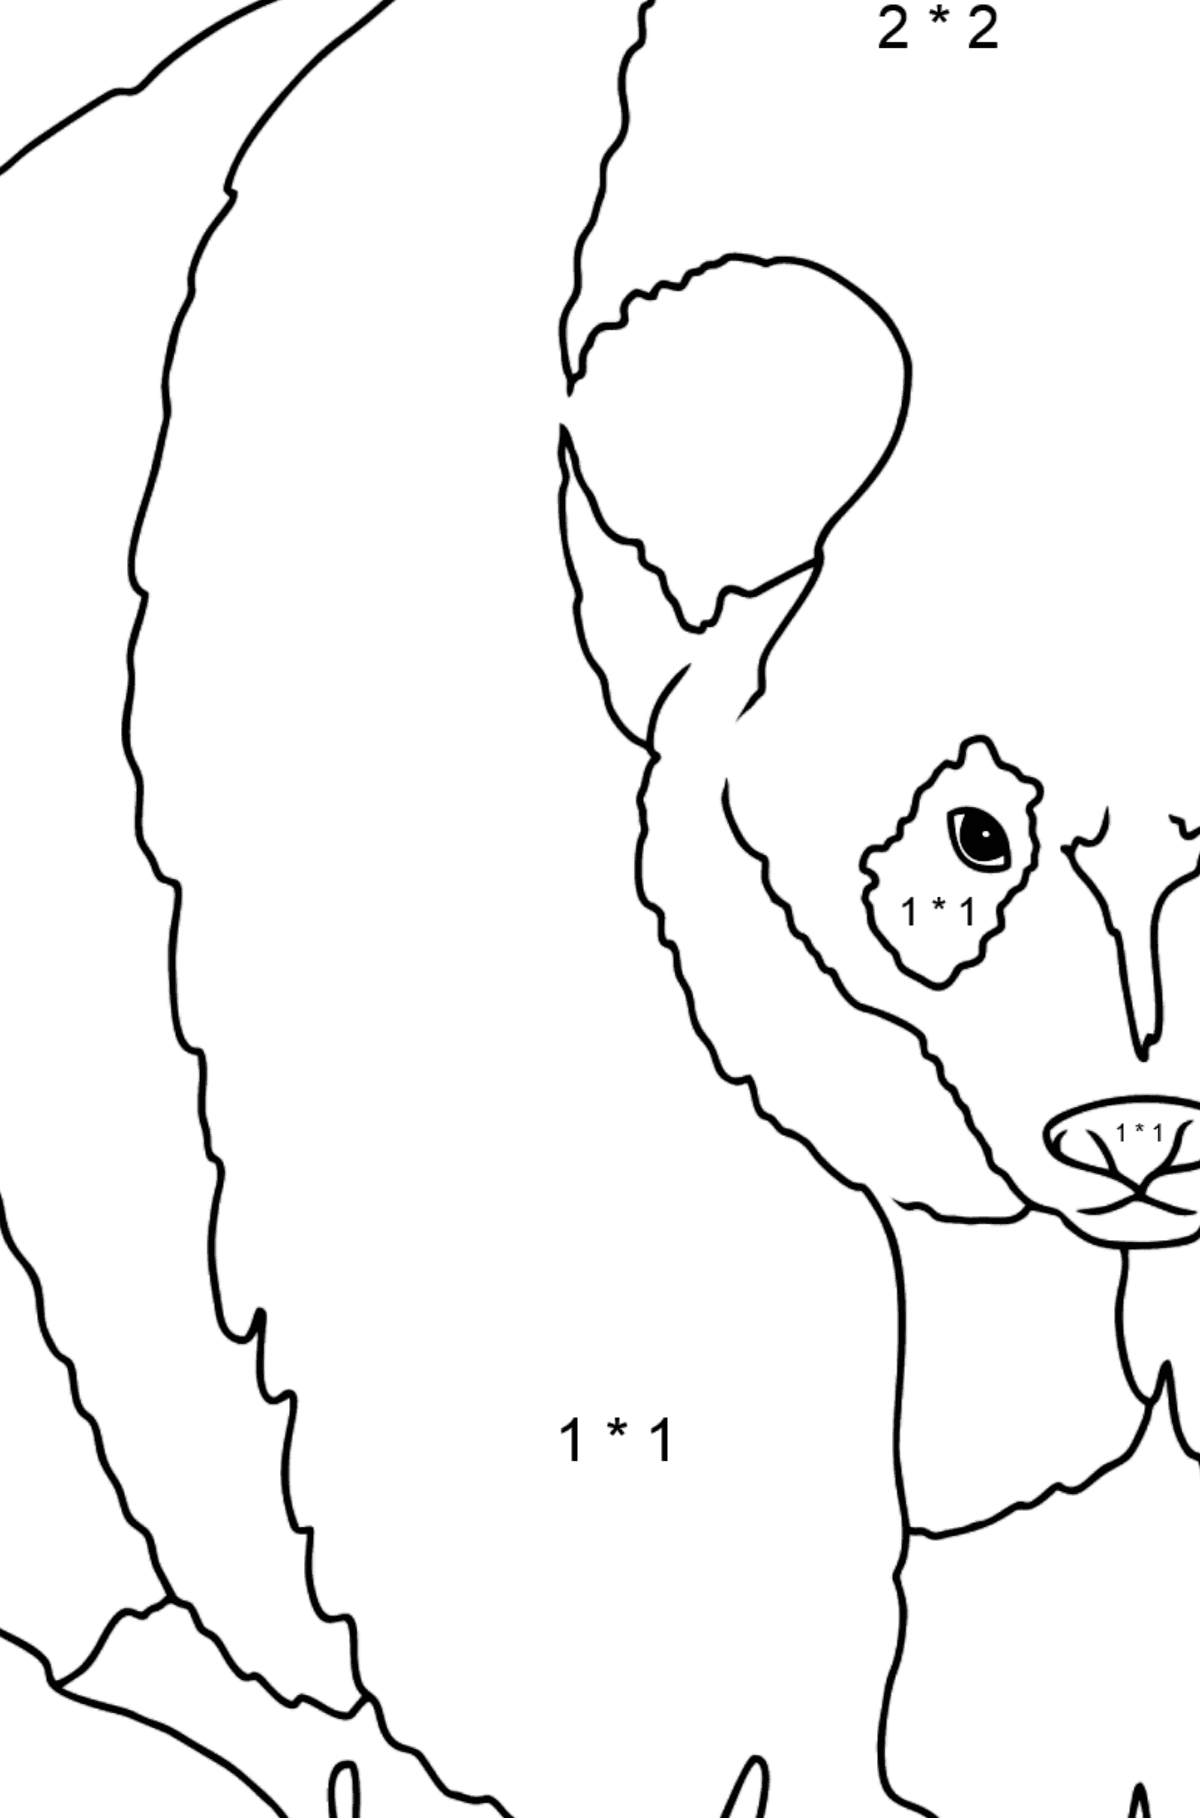 Coloring Page - A Panda is Standing - Math Coloring - Multiplication for Kids